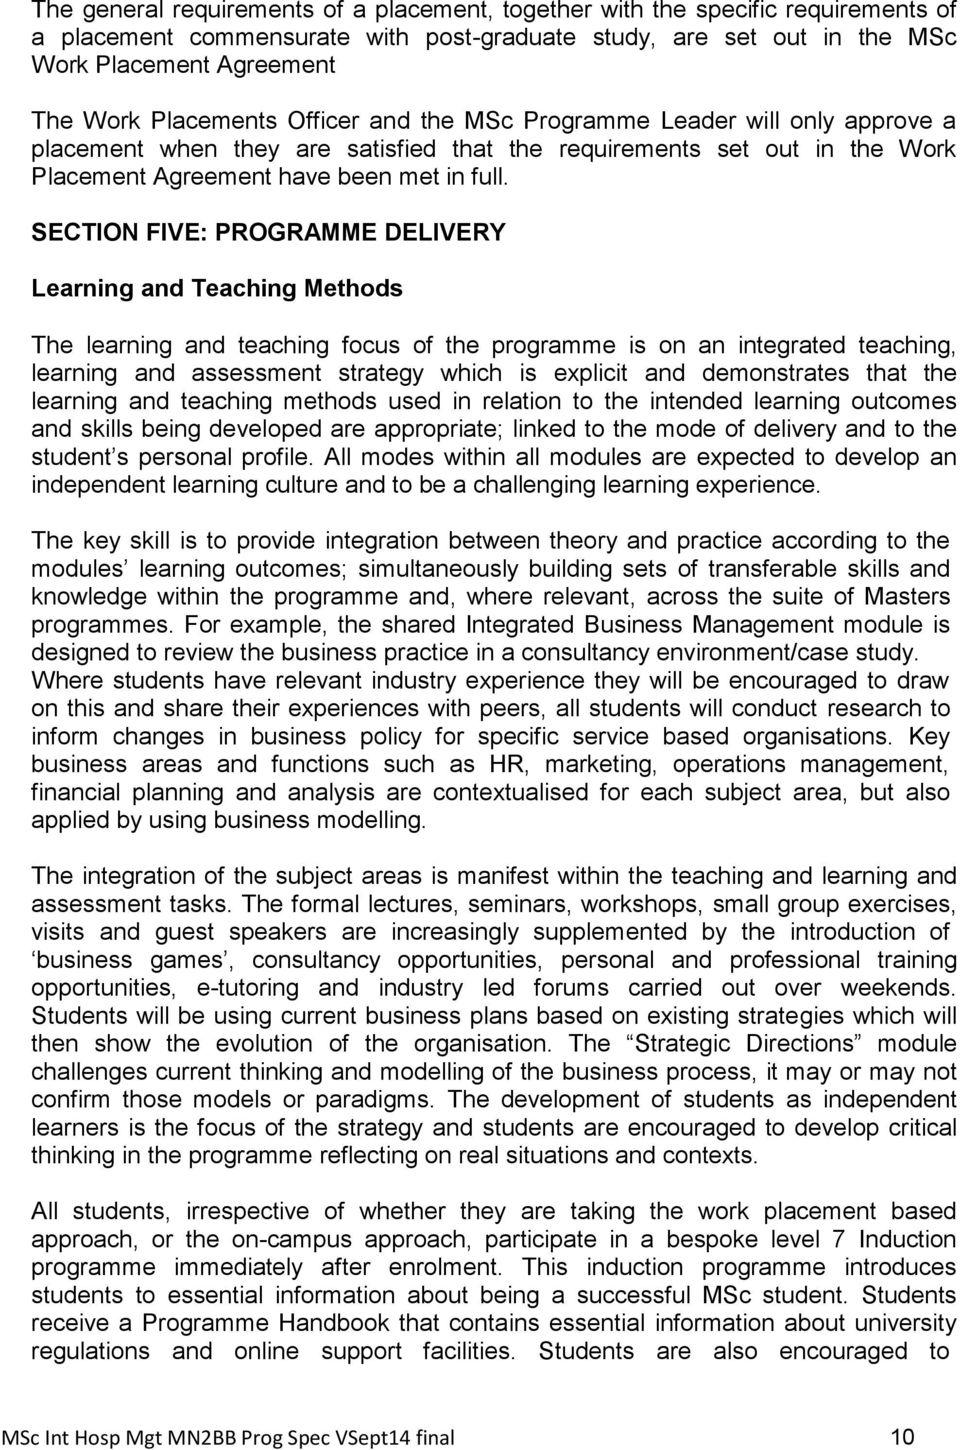 SECTION FIVE: PROGRAMME DELIVERY Learning and Teaching Methods The learning and teaching focus of the programme is on an integrated teaching, learning and assessment strategy which is explicit and